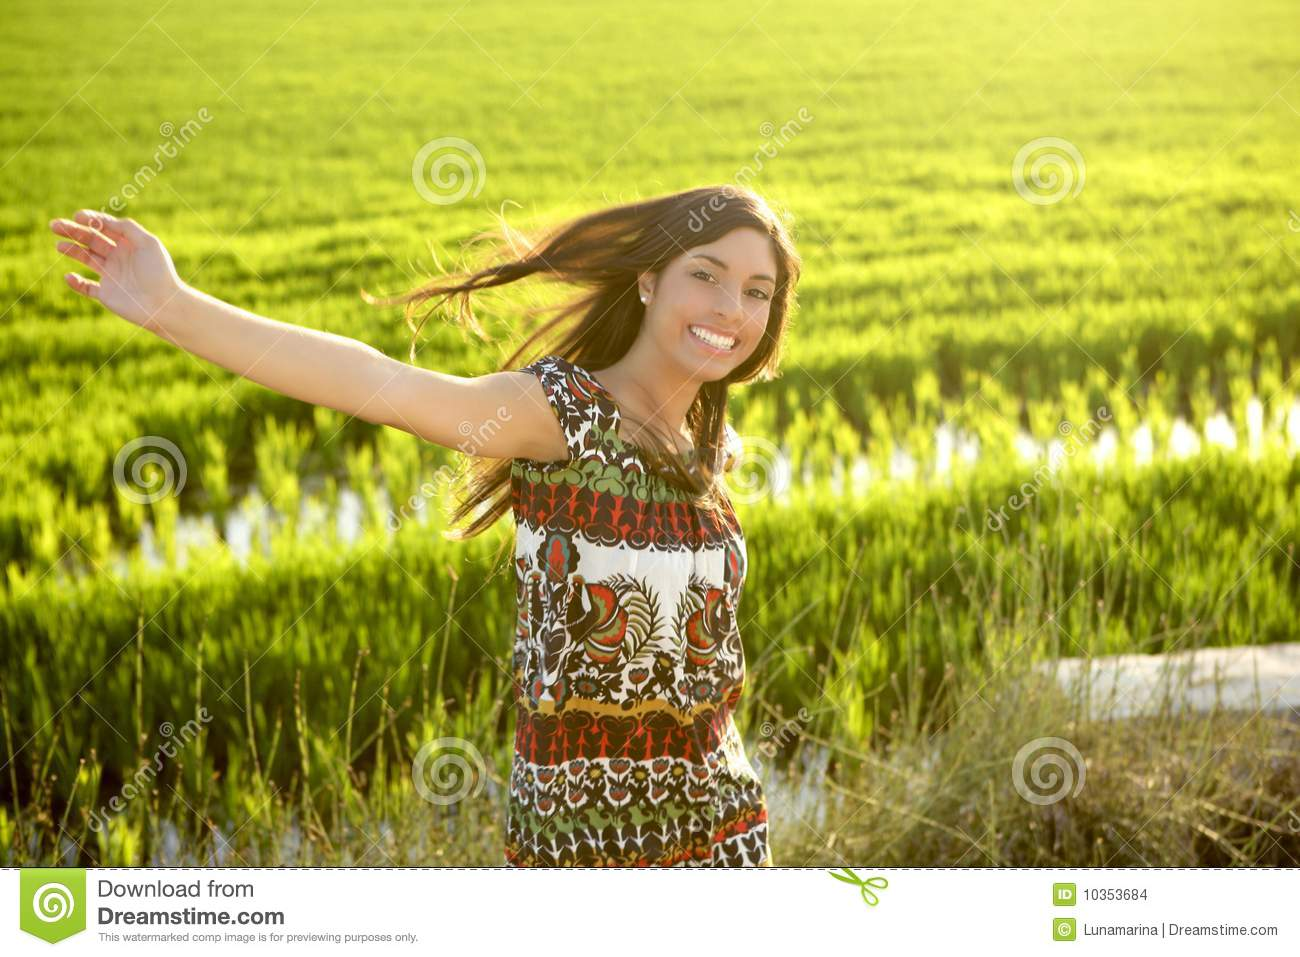 hindu single women in rice What good sex means to indian women (thinkstock photos/getty images)  when she started dating a nice guy, she had planned to 'hold back and make it special.